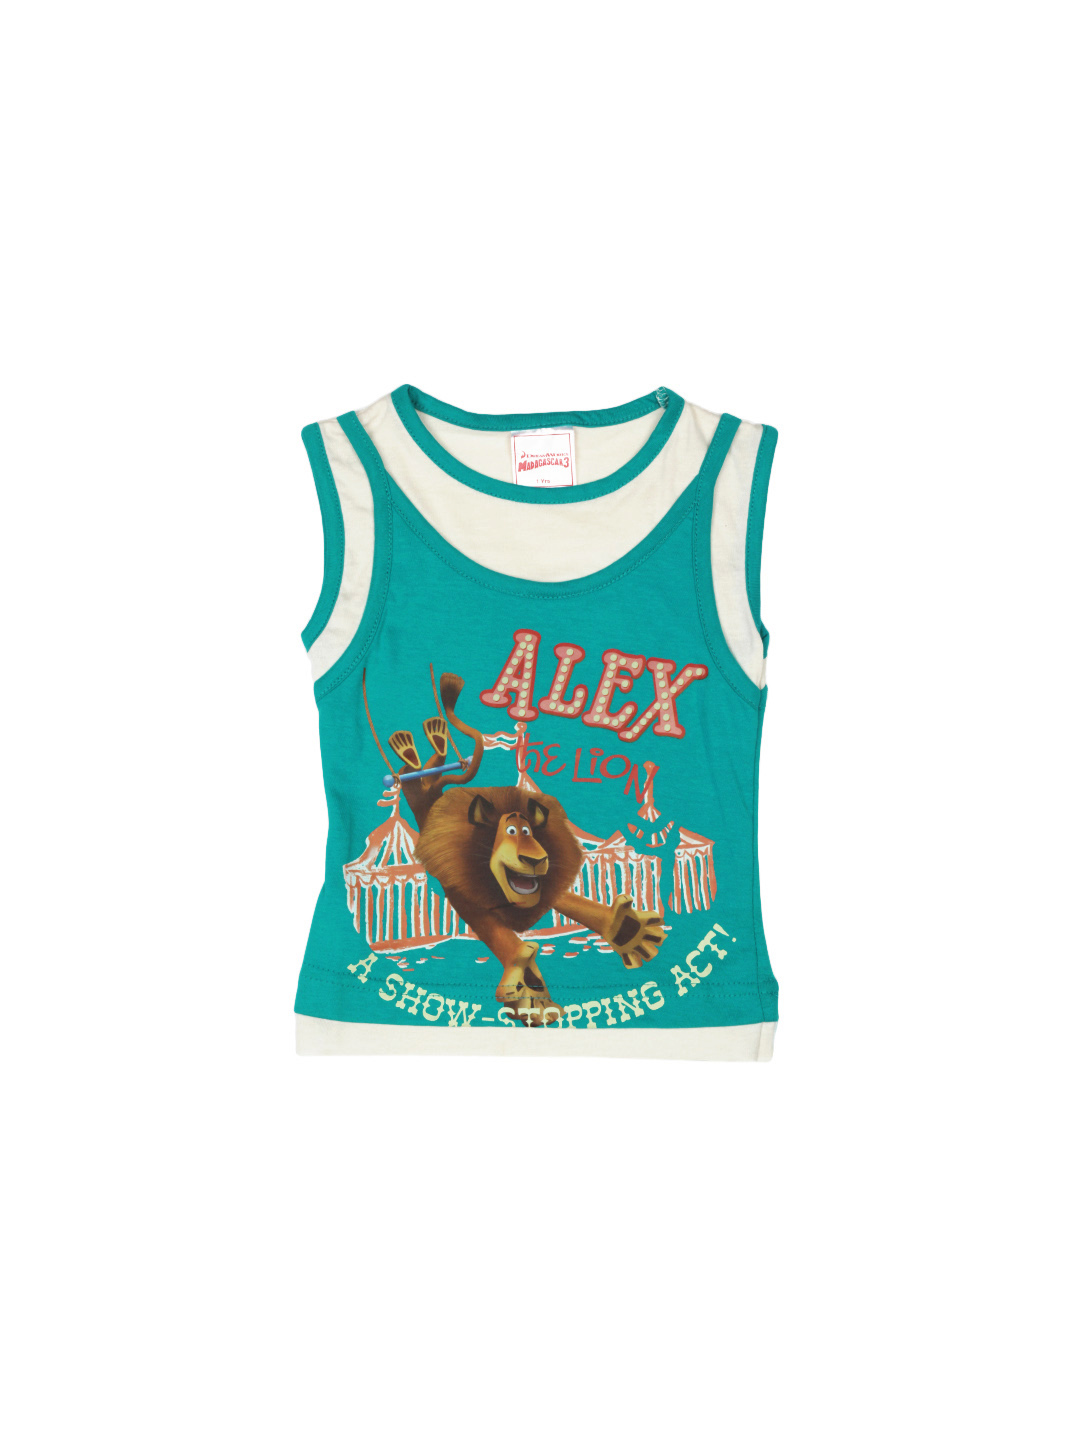 Madagascar3 Girls Teal Printed T-Shirt